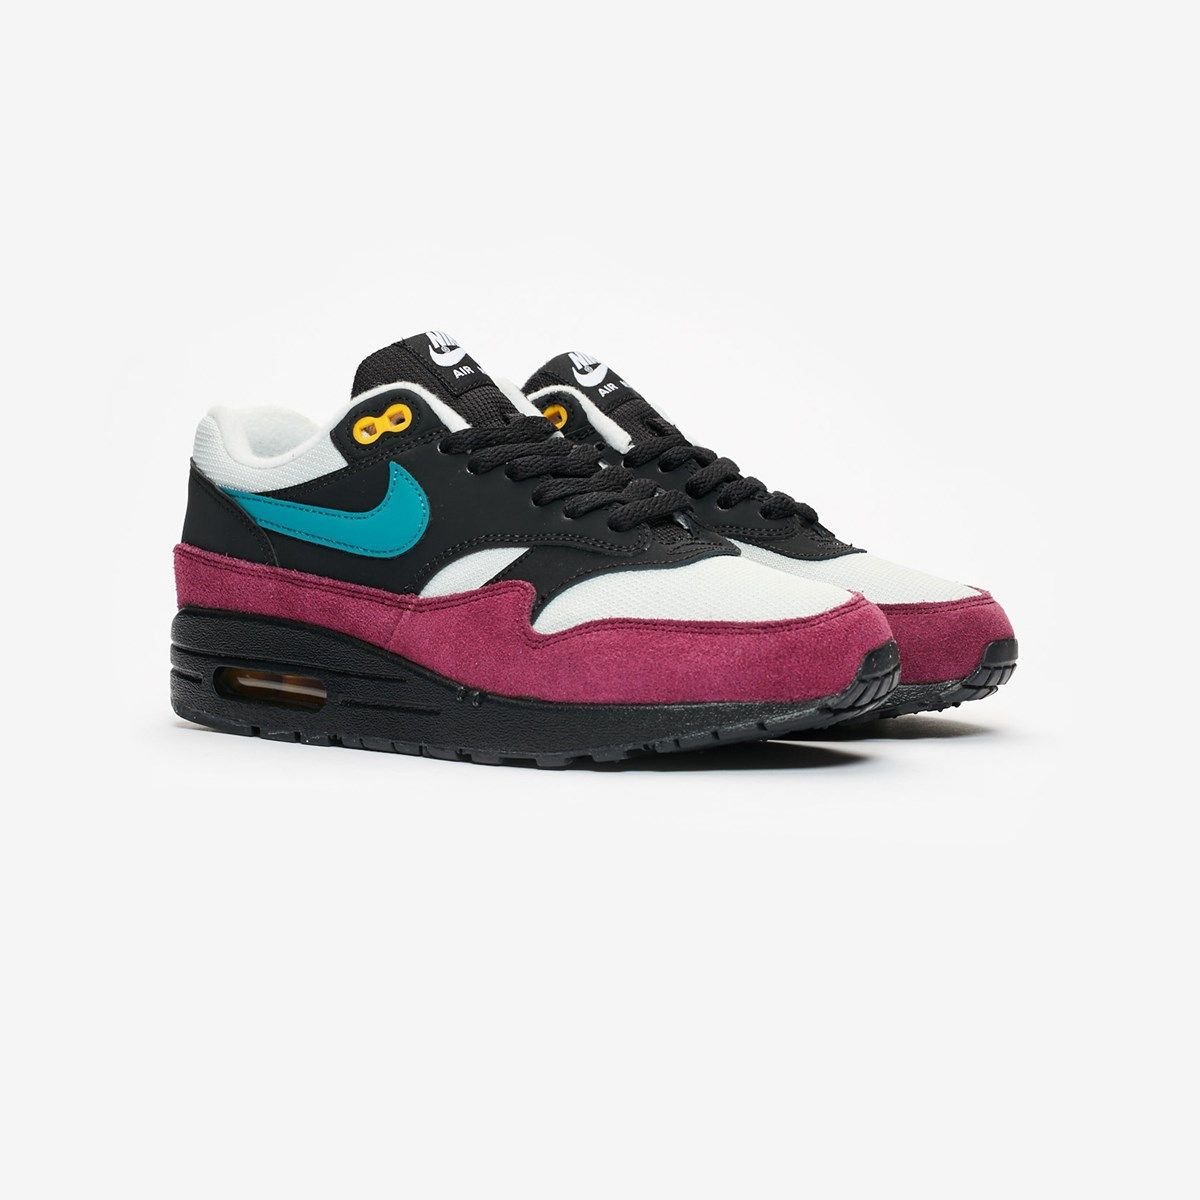 uk availability 723c1 d26b9 These Black, Geode Teal and Light Silver Nike Air Max 1 are crafted with a  mesh upper that features nubuck overlays and leather highlights.